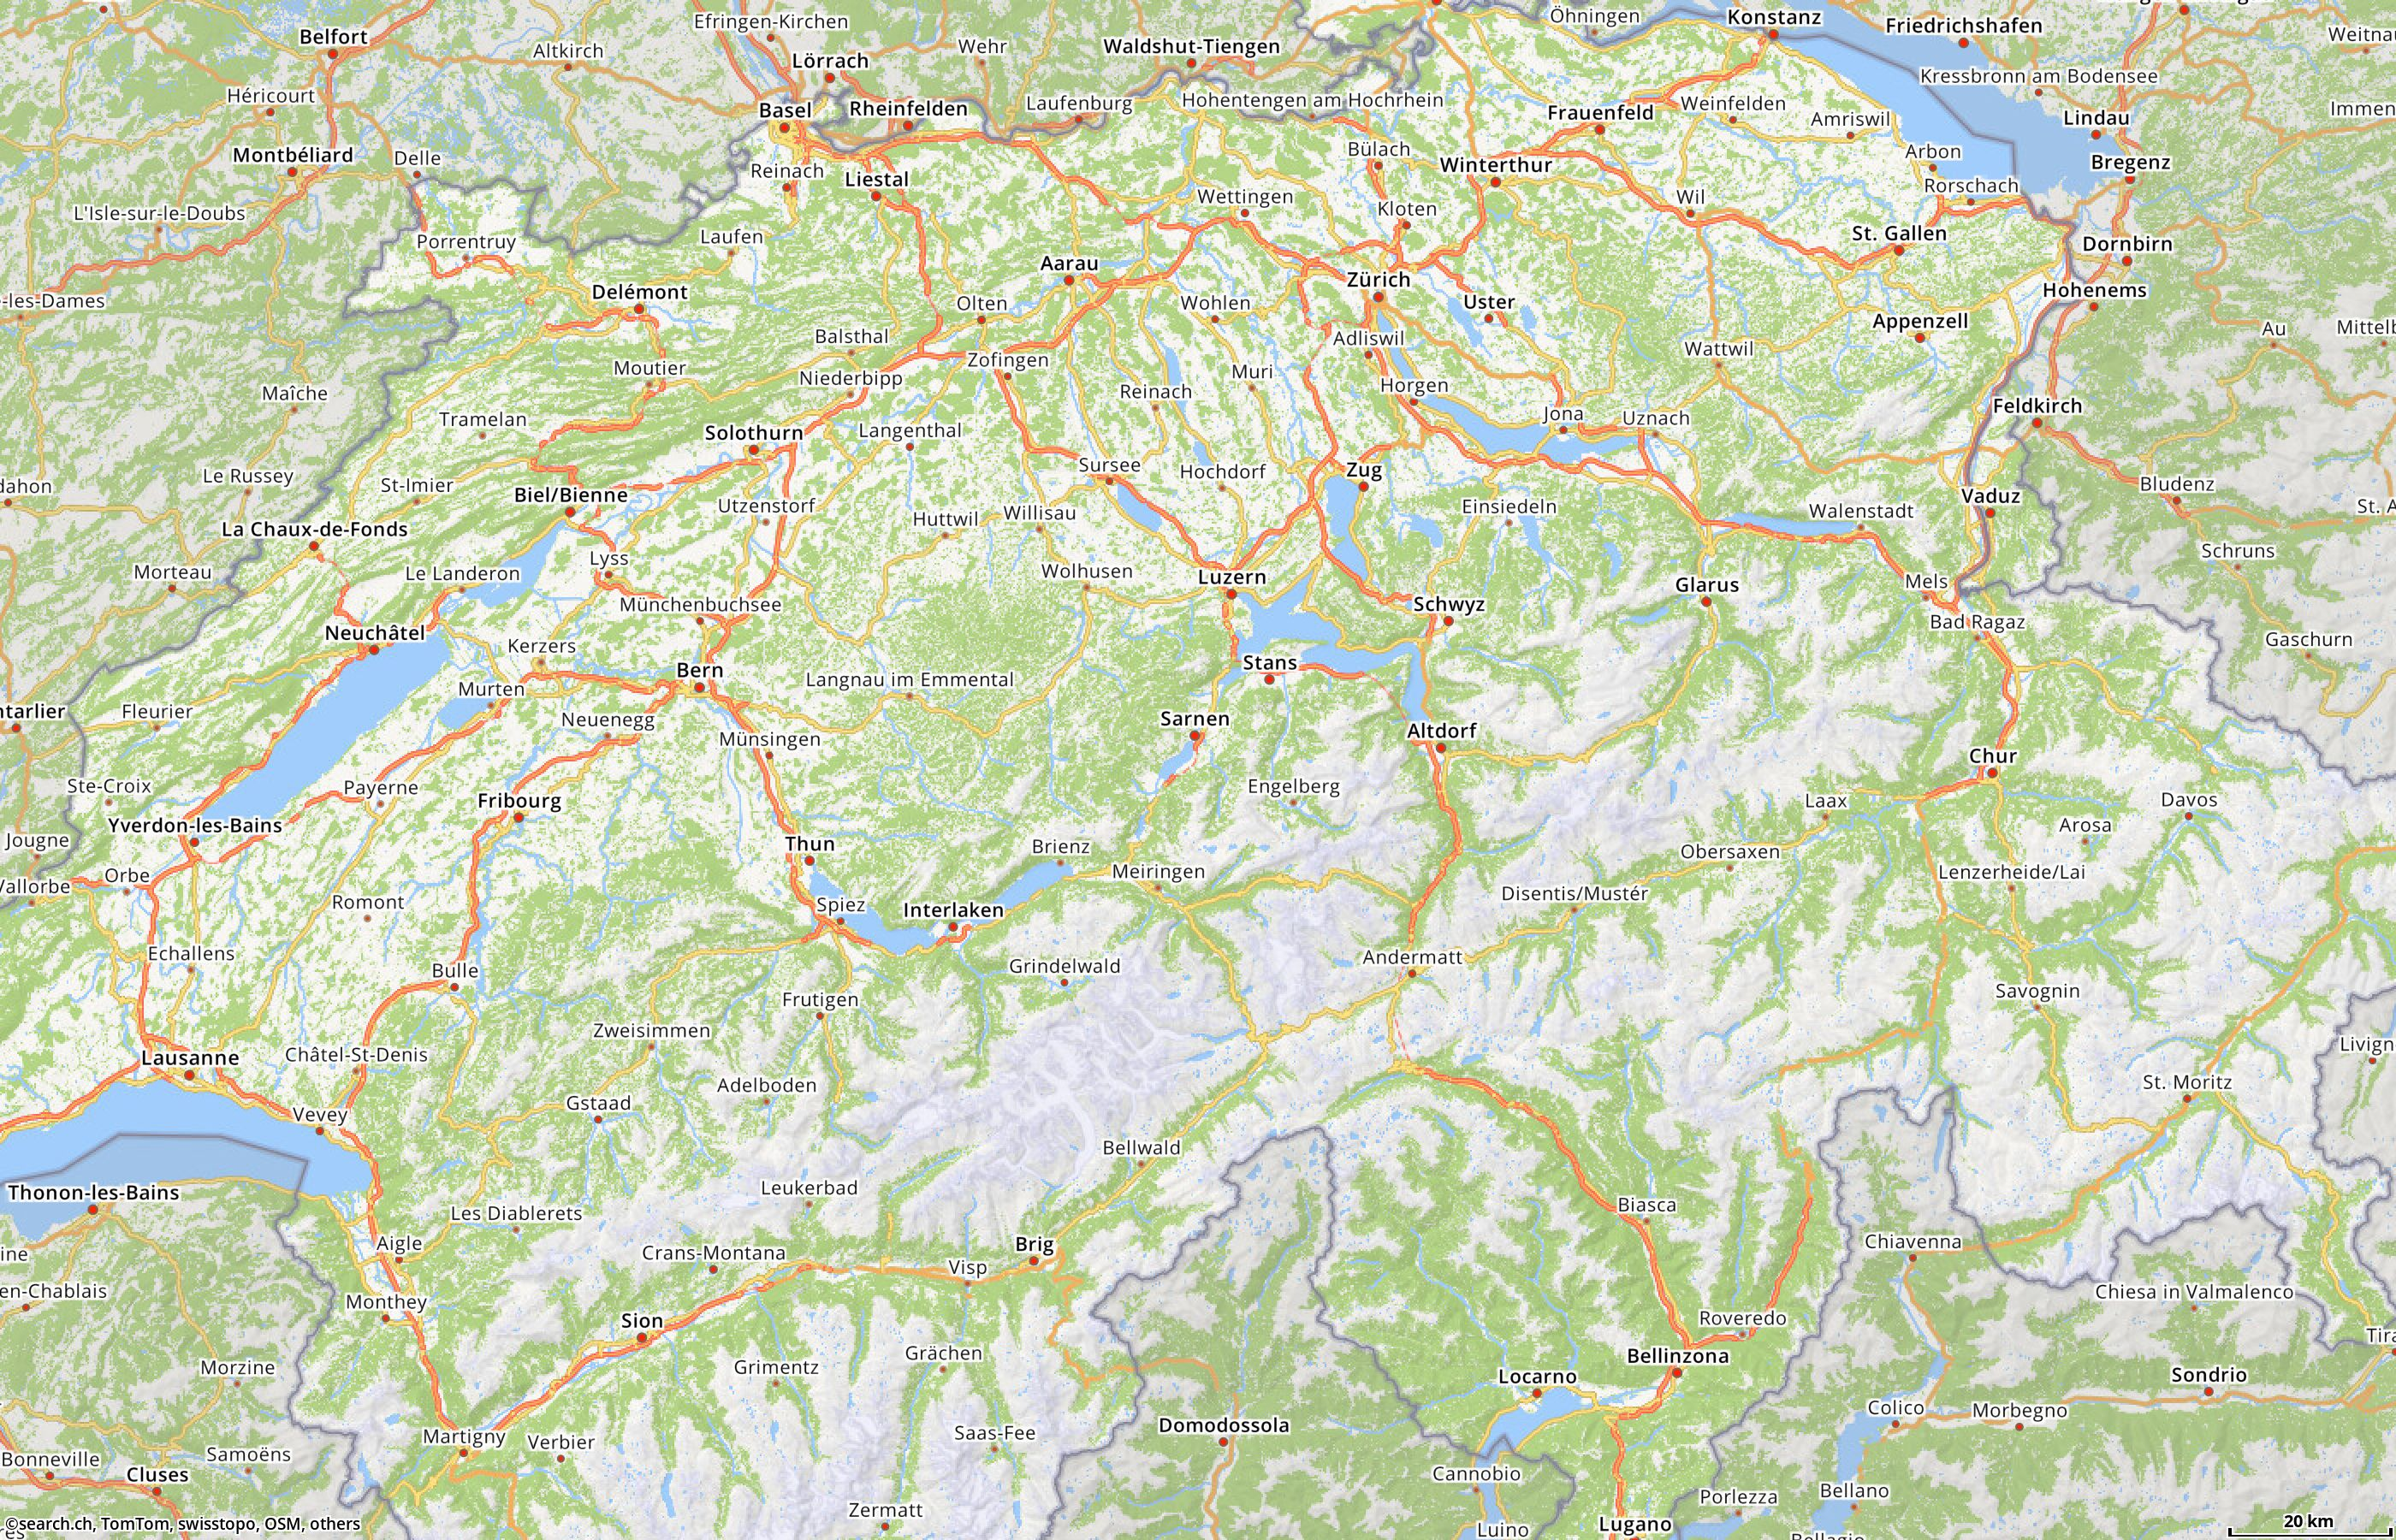 Carte suisse et guide routier